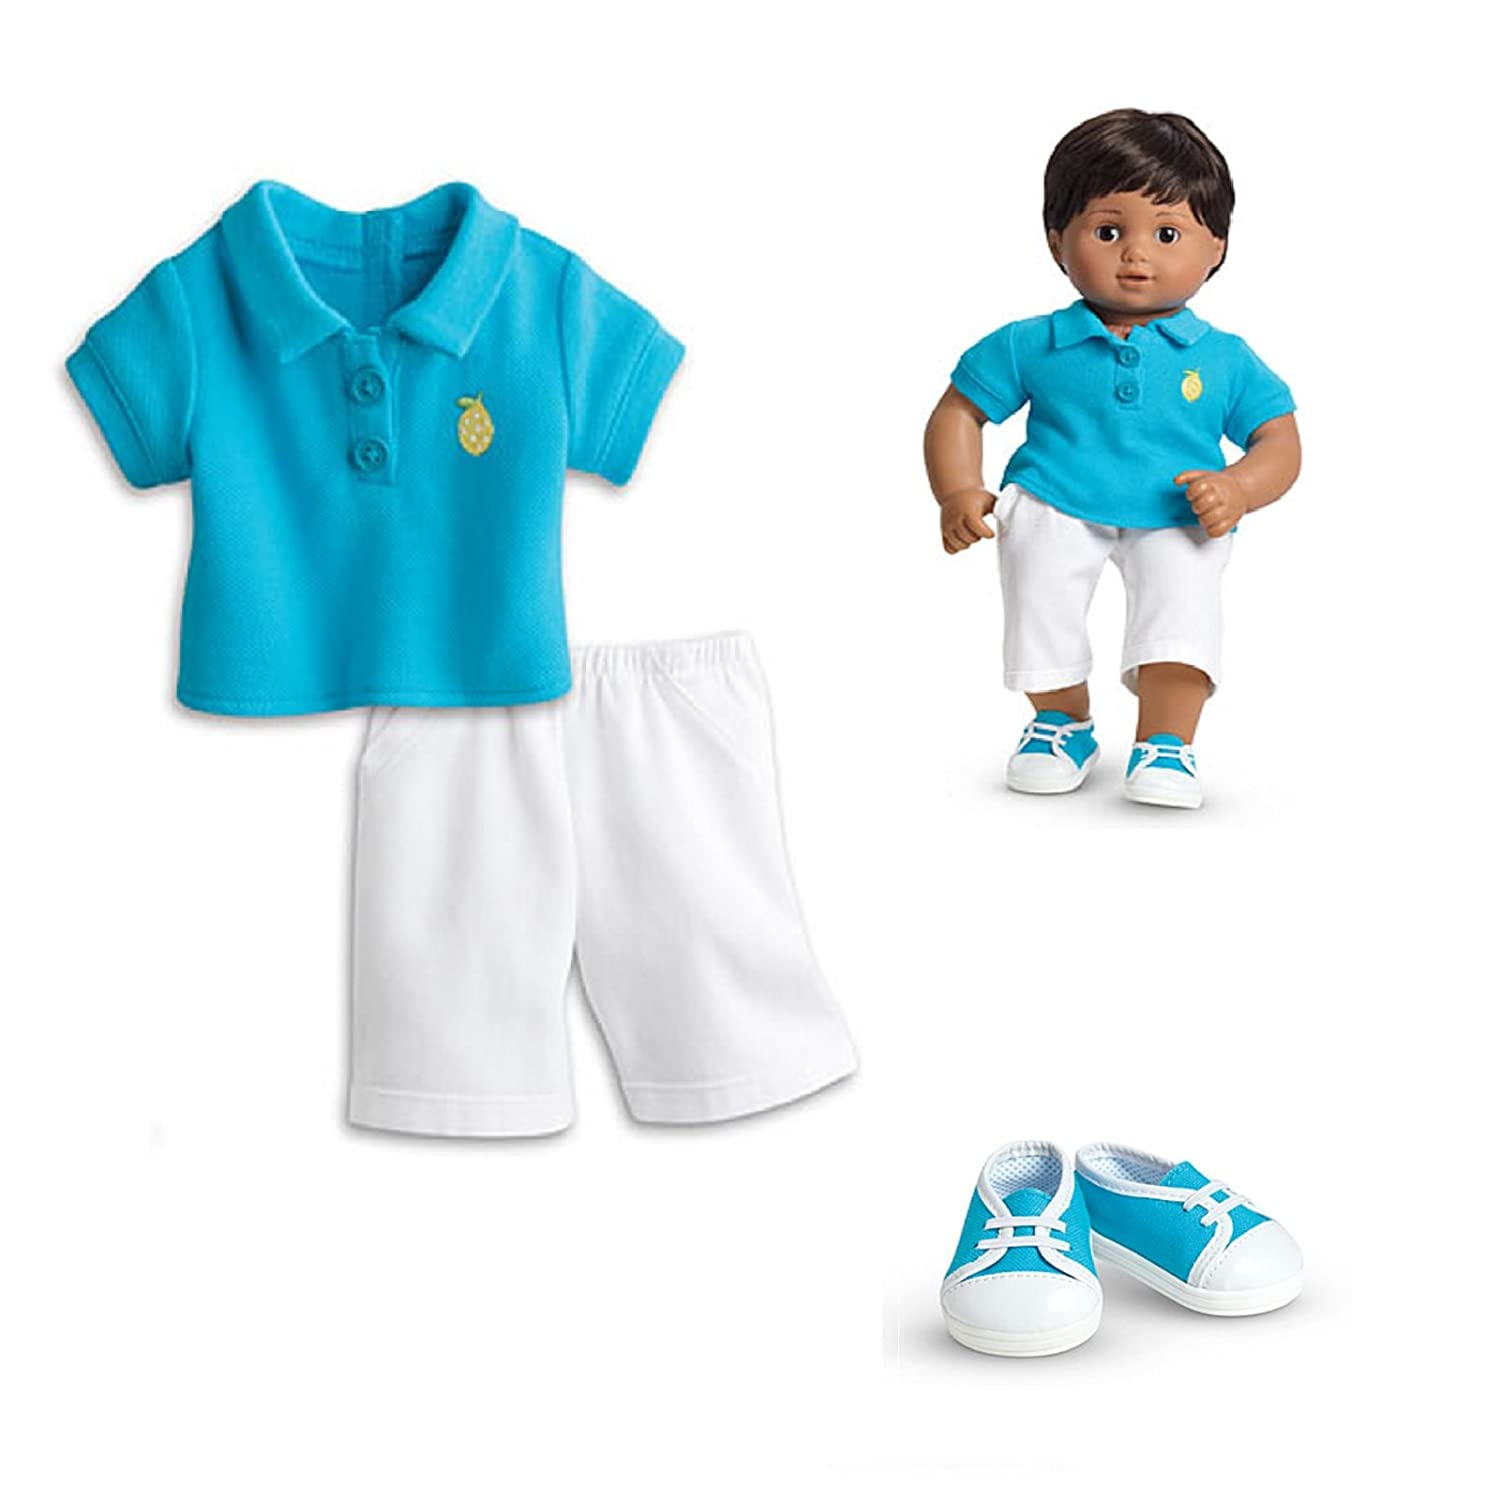 Amazon American Girl Bitty Twins Sunny Fun Outfit in Bag for 15